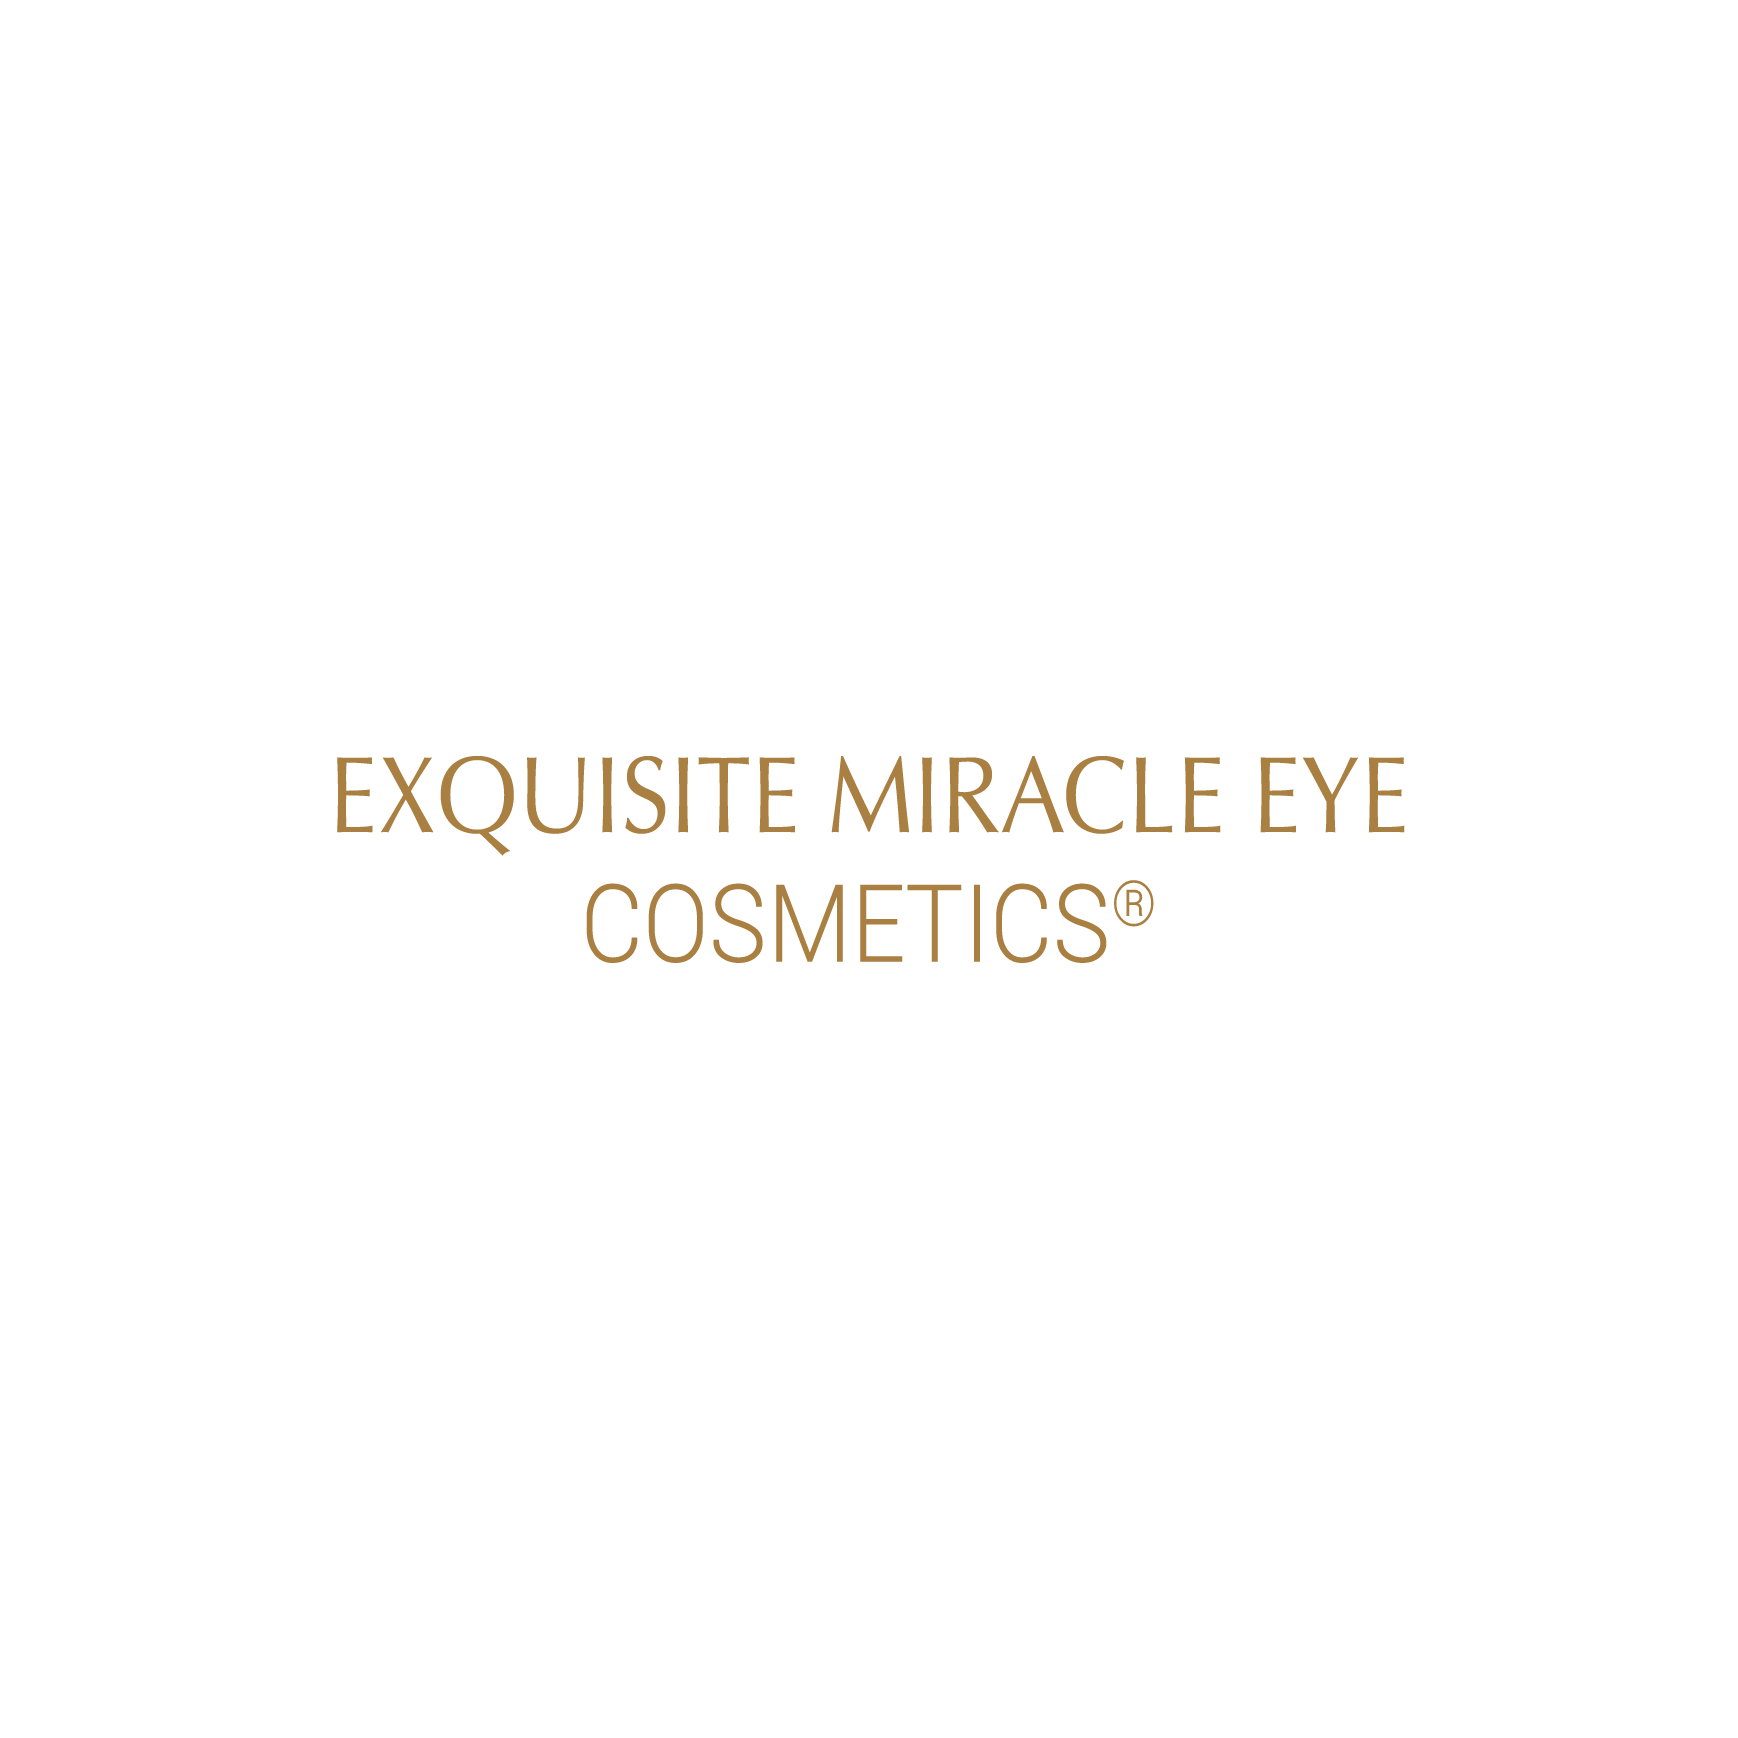 Exquisite Miracle Eye Cosmetics